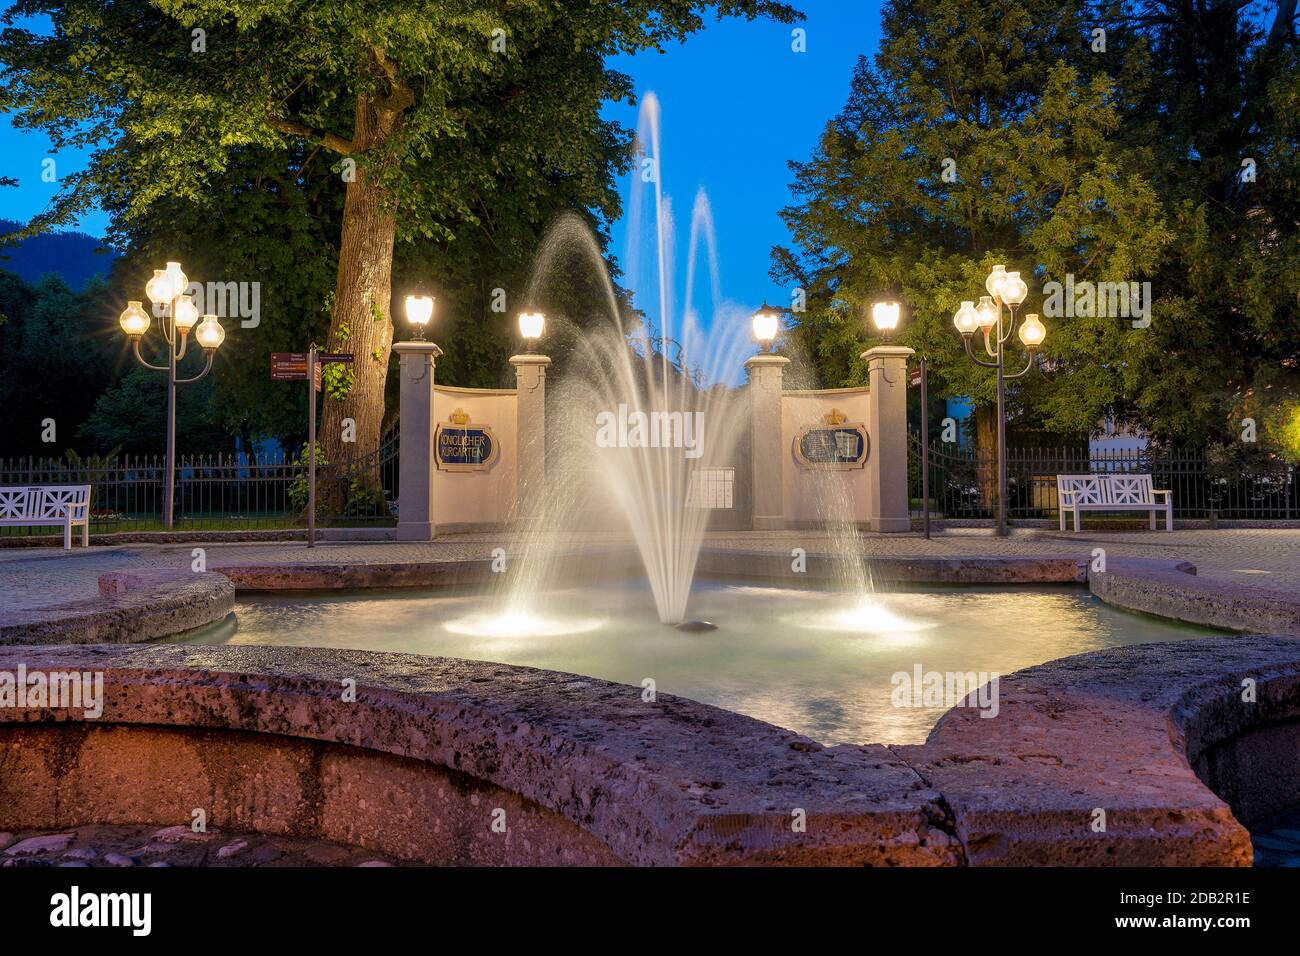 Fountain at the entrance of the spa gardens at night. Bad Reichenhall, Upper Bavaria Stock Photo